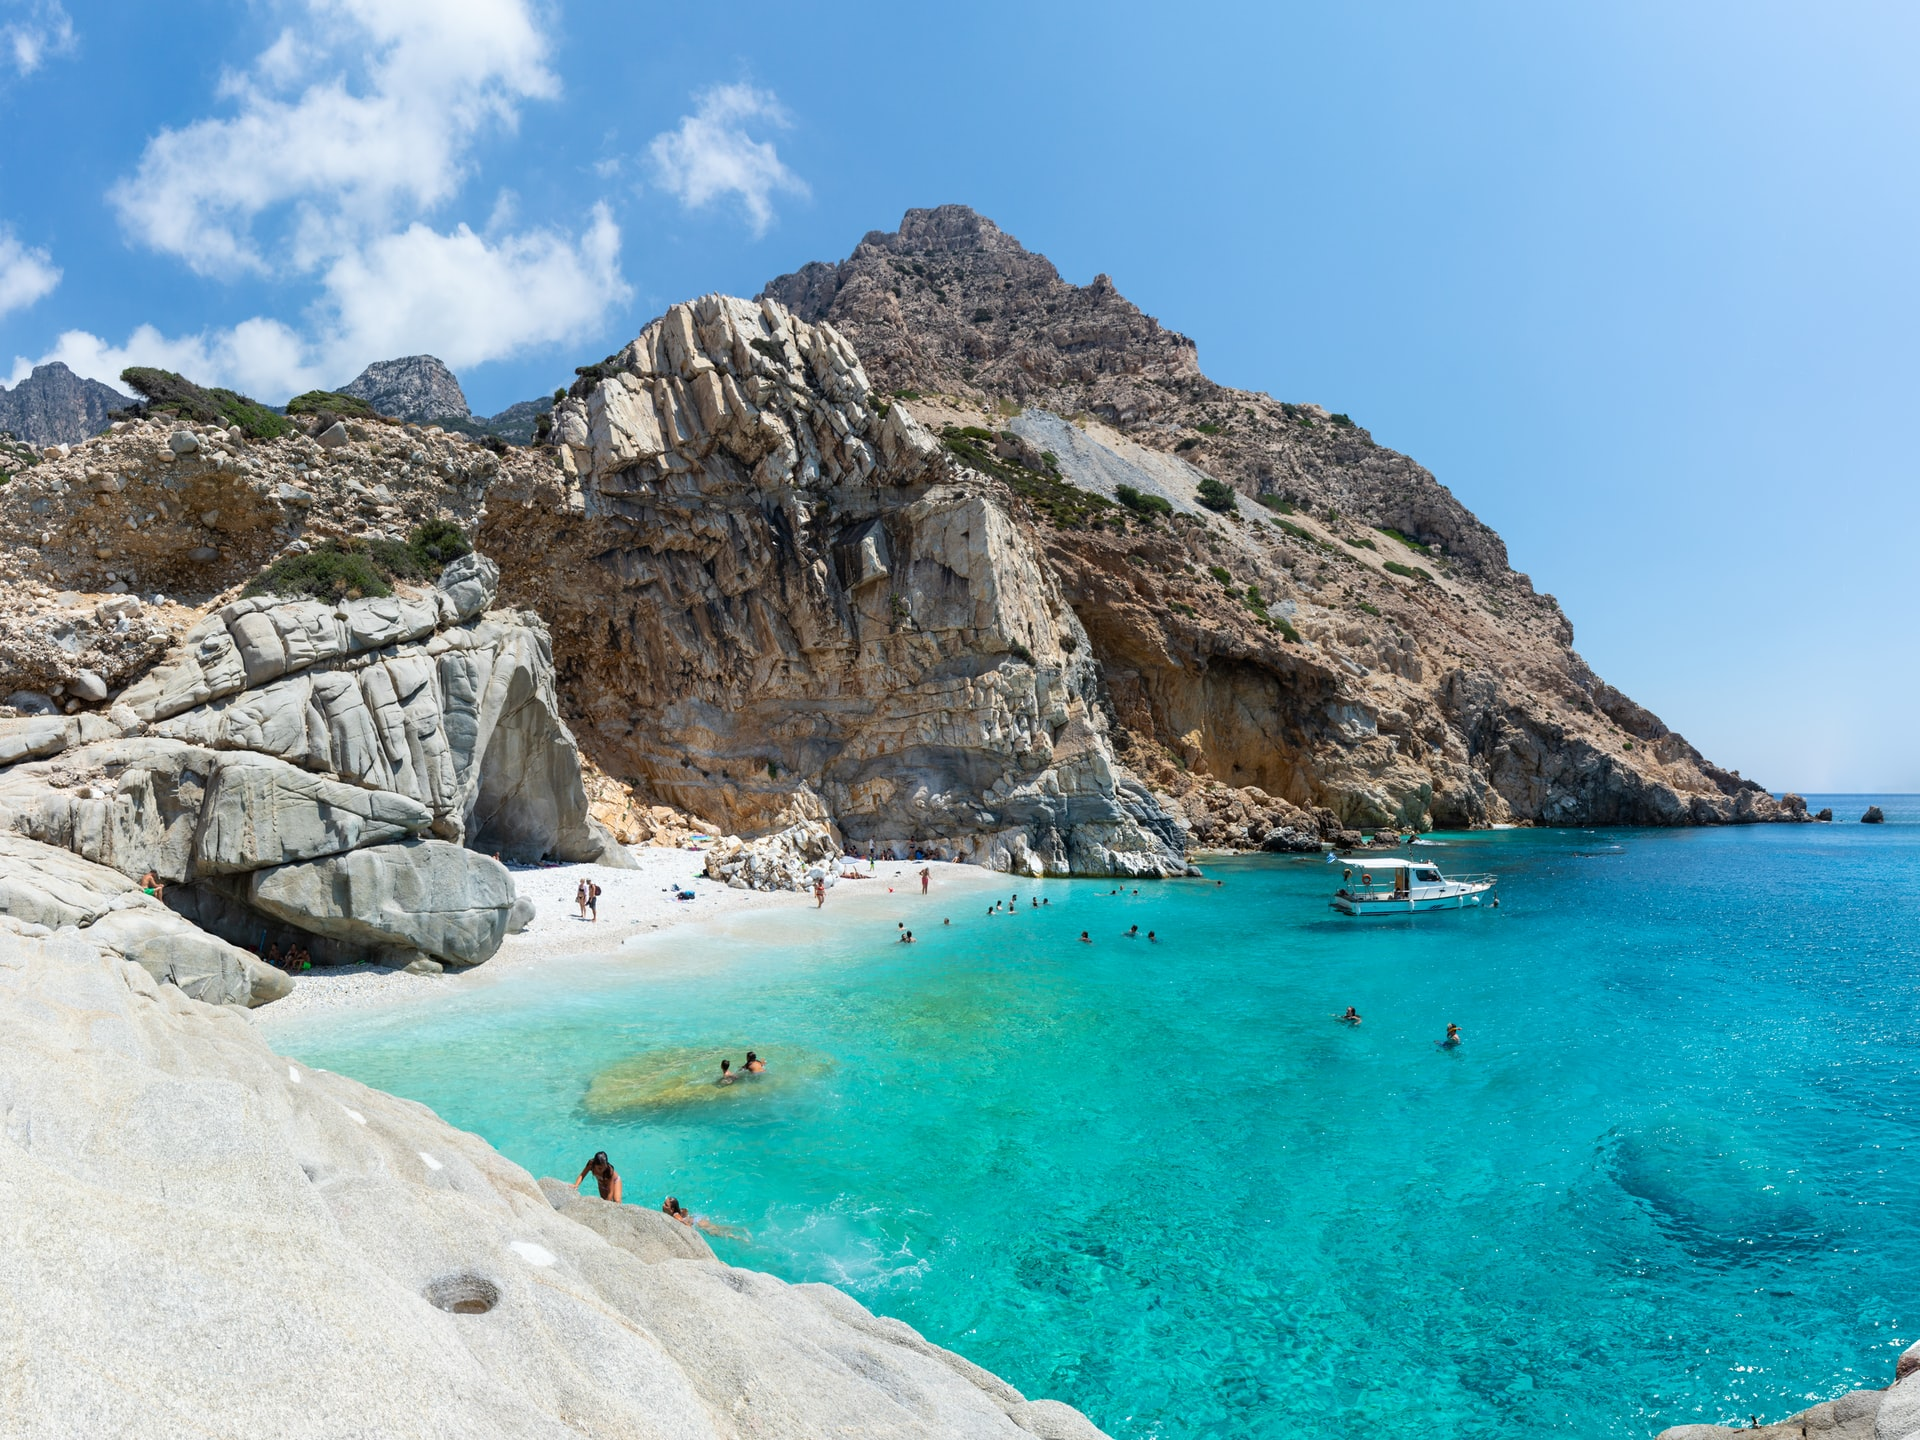 The stunning Mediterranean islands Hidden away beaches like Seichelles on the island of Ikaria are best accessed by boat